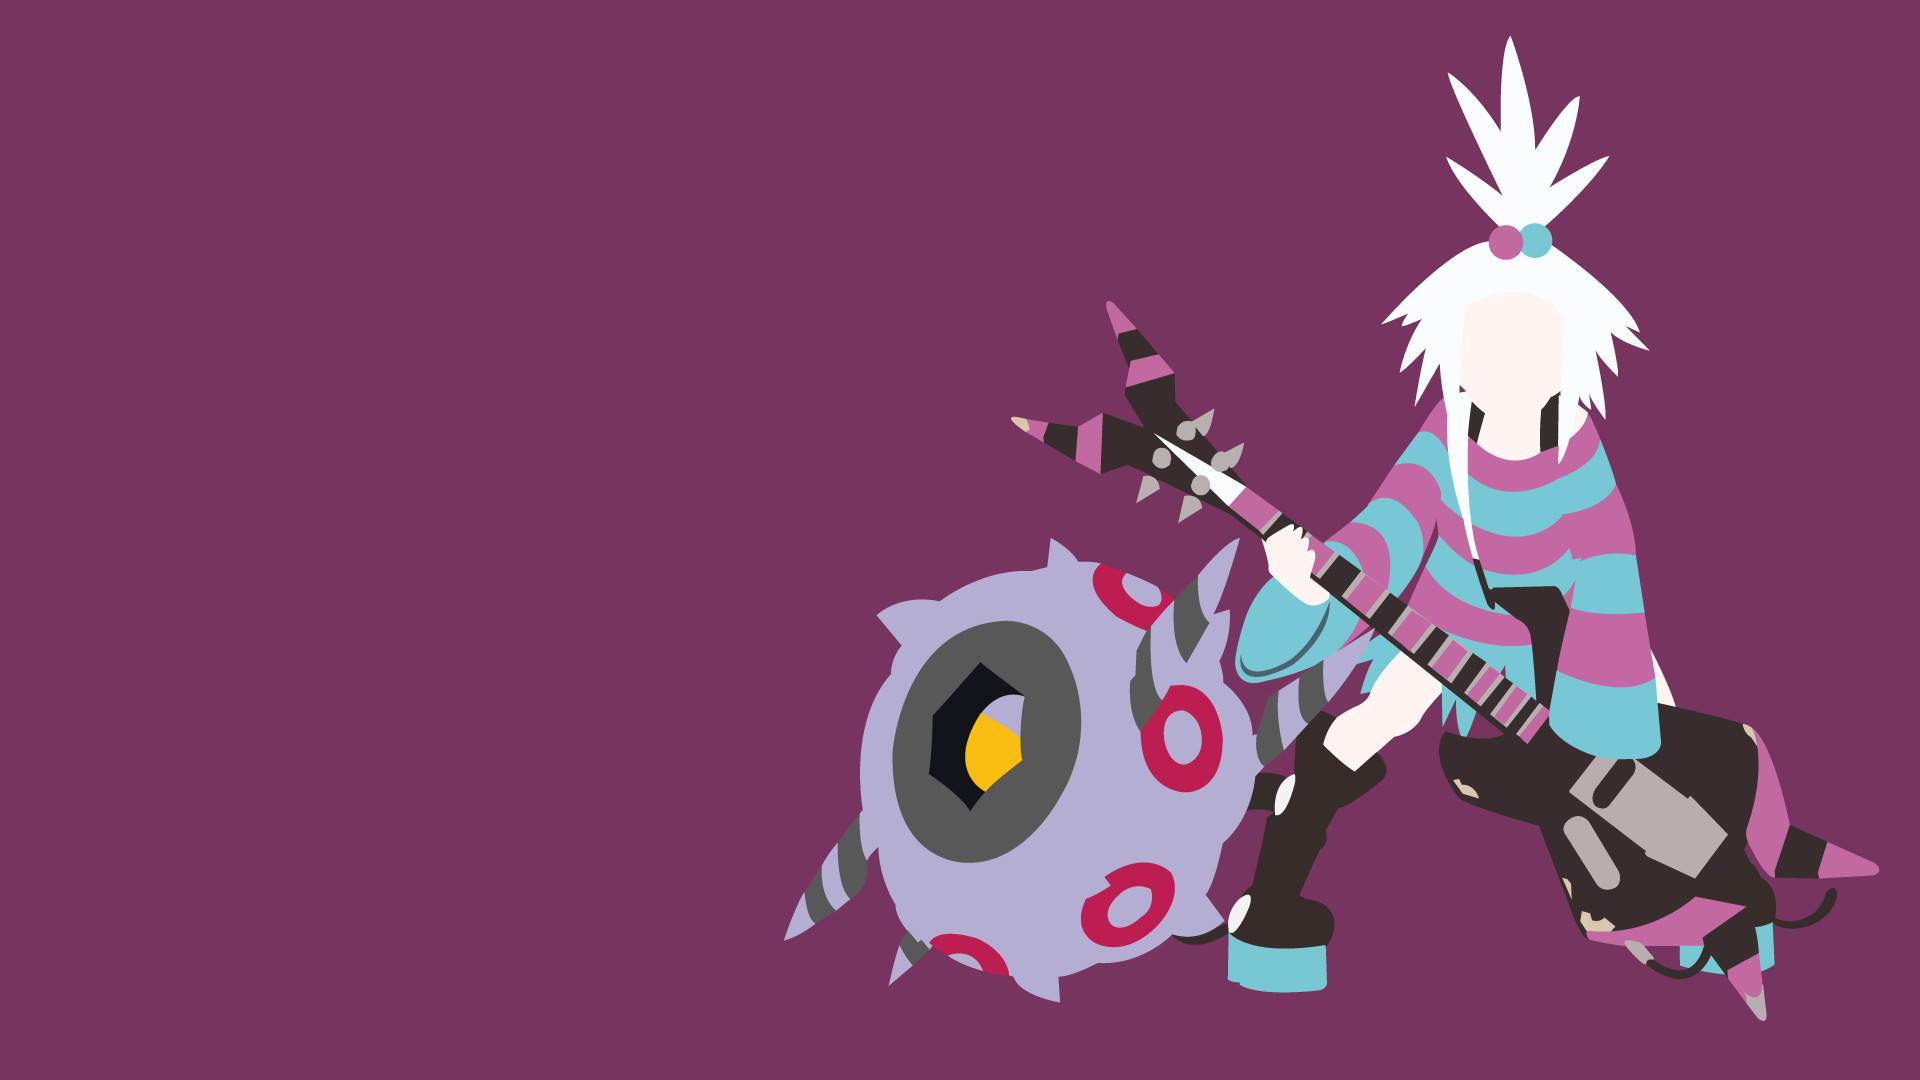 Res: 1920x1080, Roxie by LimeCatMastr